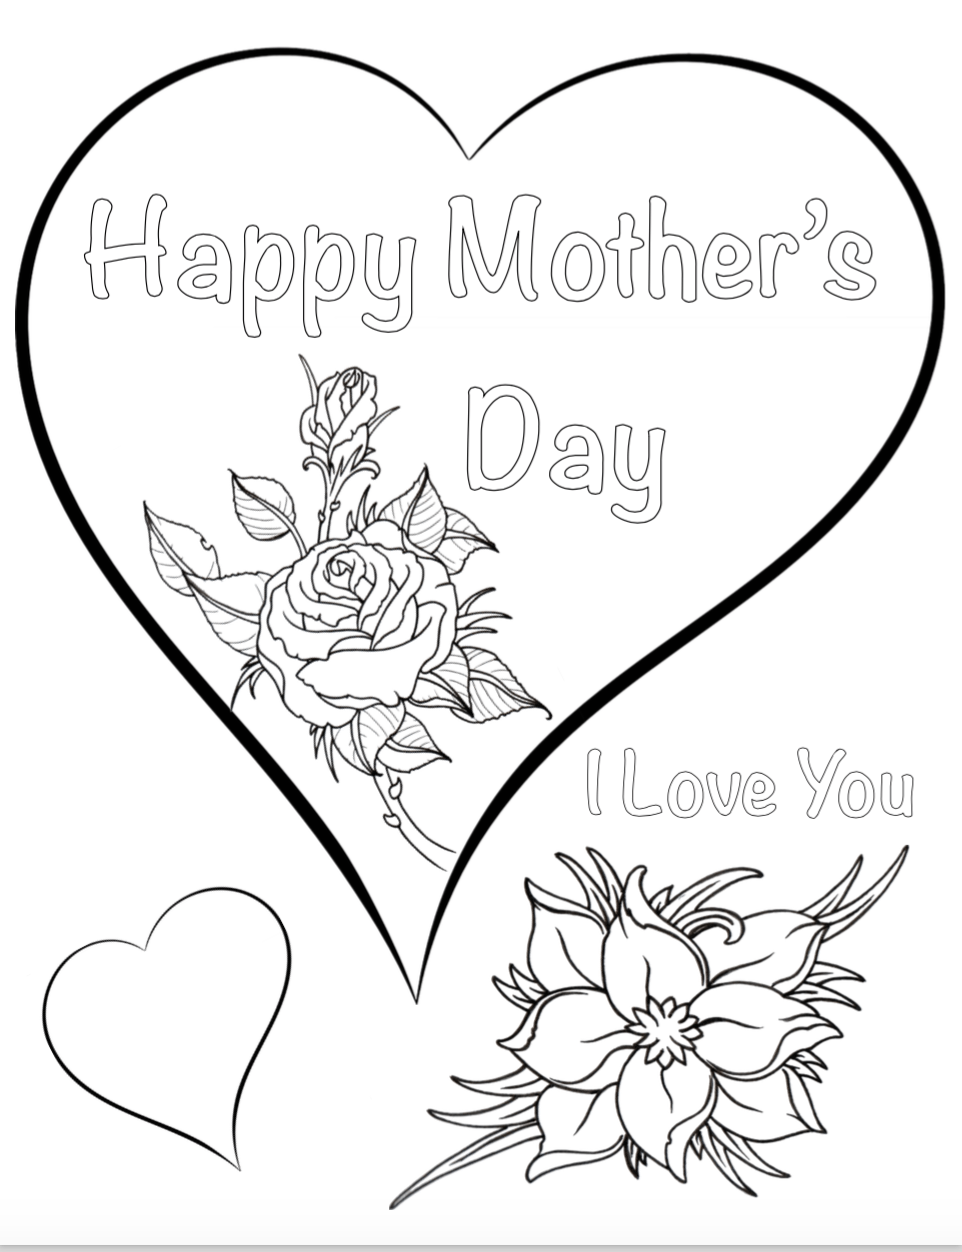 Free Printable Mother's Day Coloring Pages: 4 different